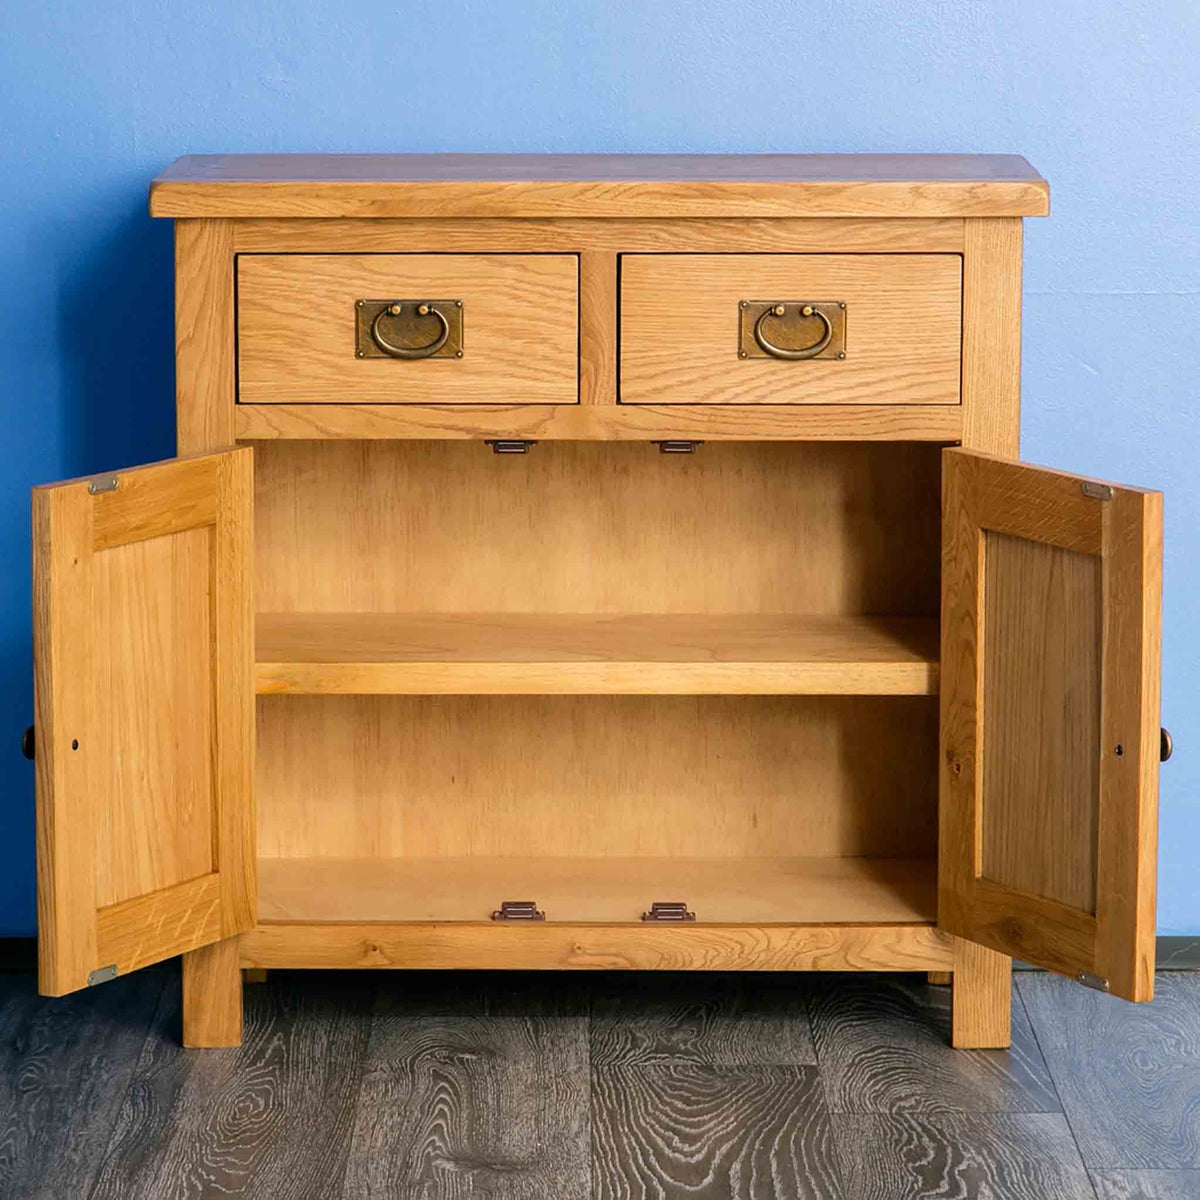 Surrey Oak Mini Sideboard with doors open